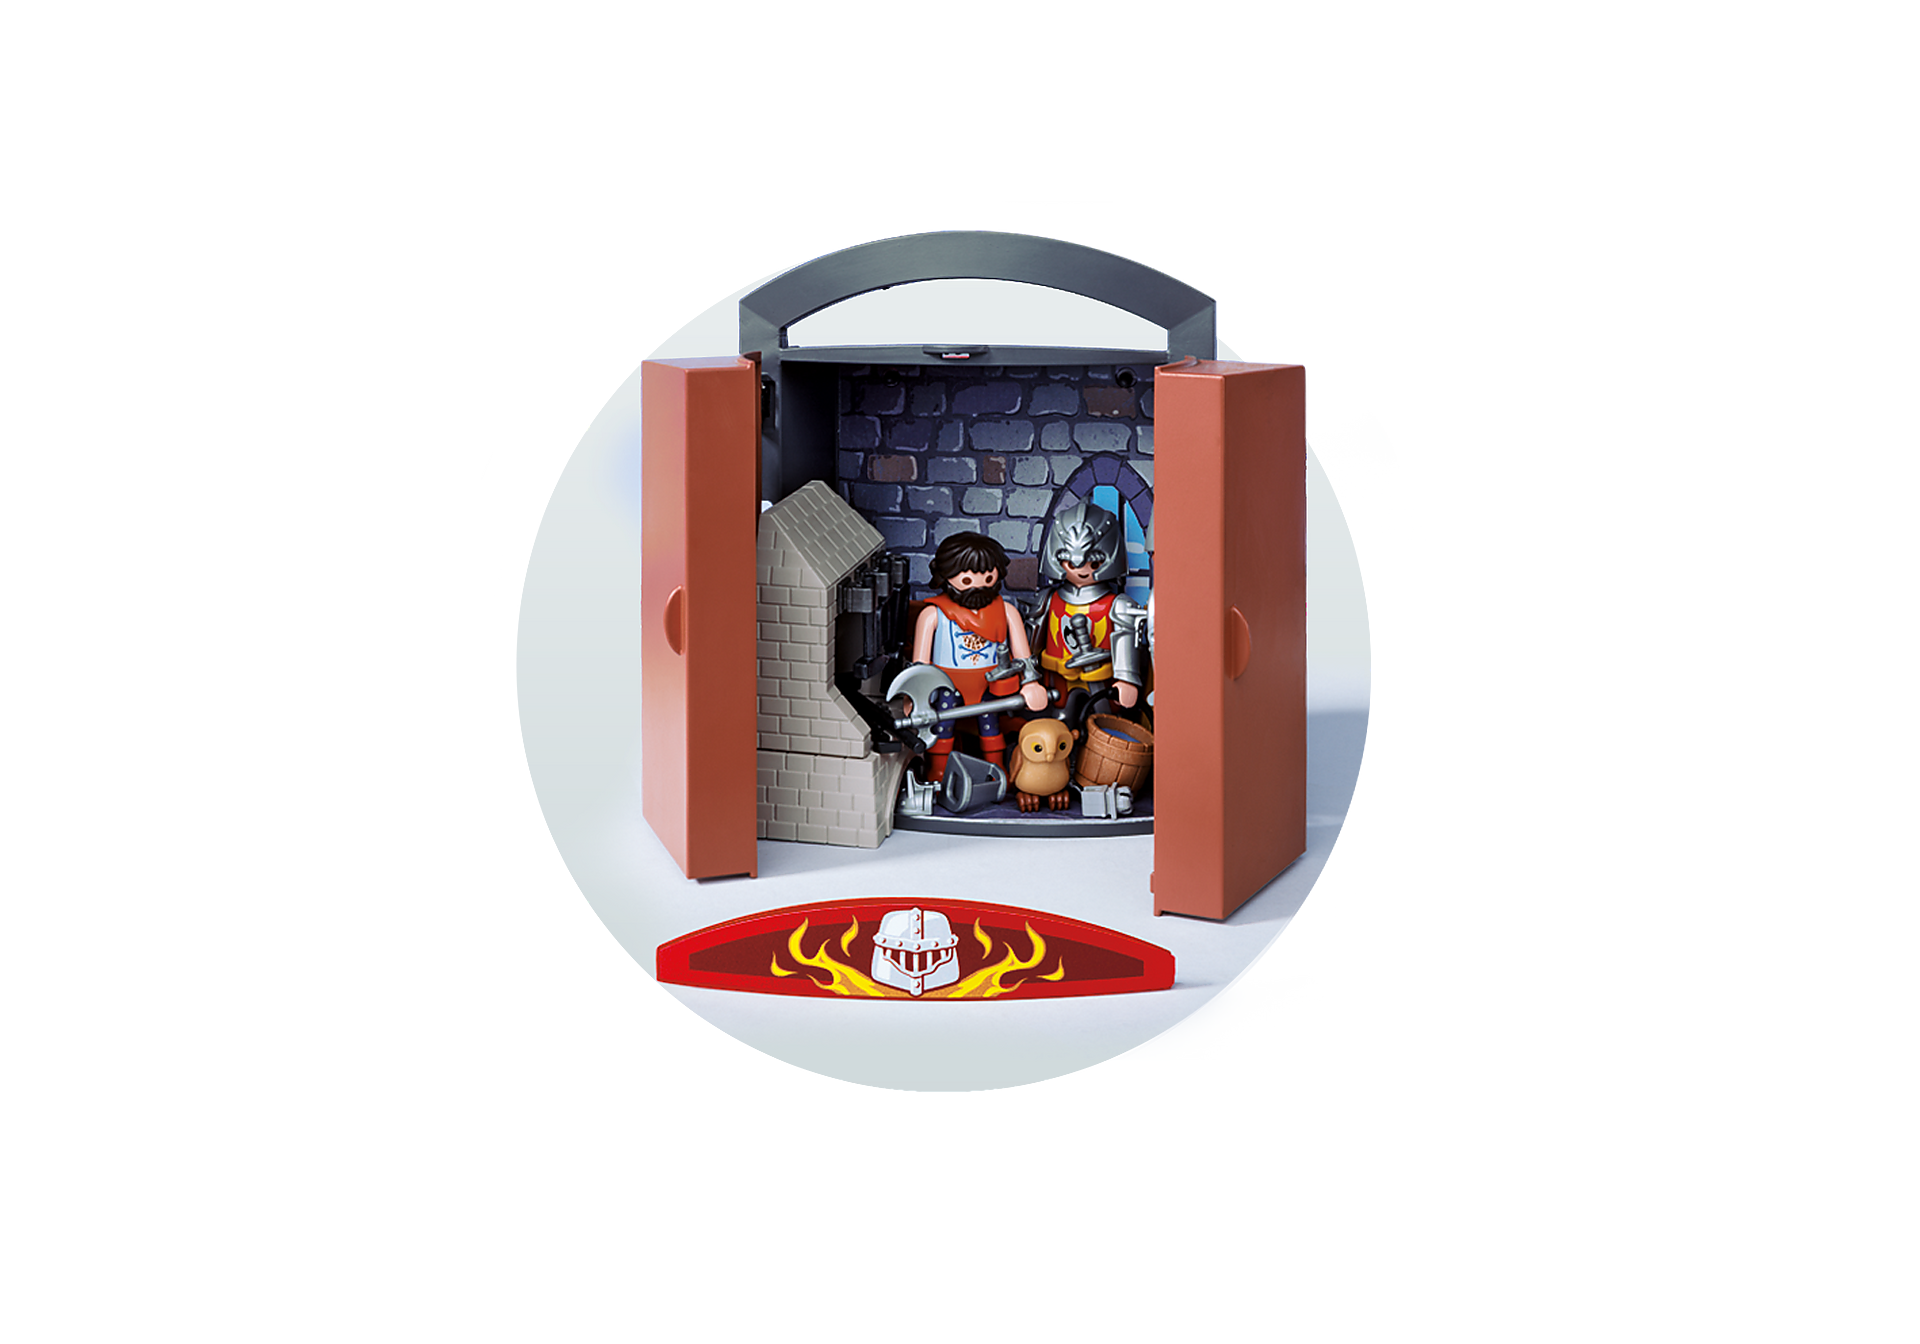 http://media.playmobil.com/i/playmobil/5637_product_extra1/Knights' Armory Play Box